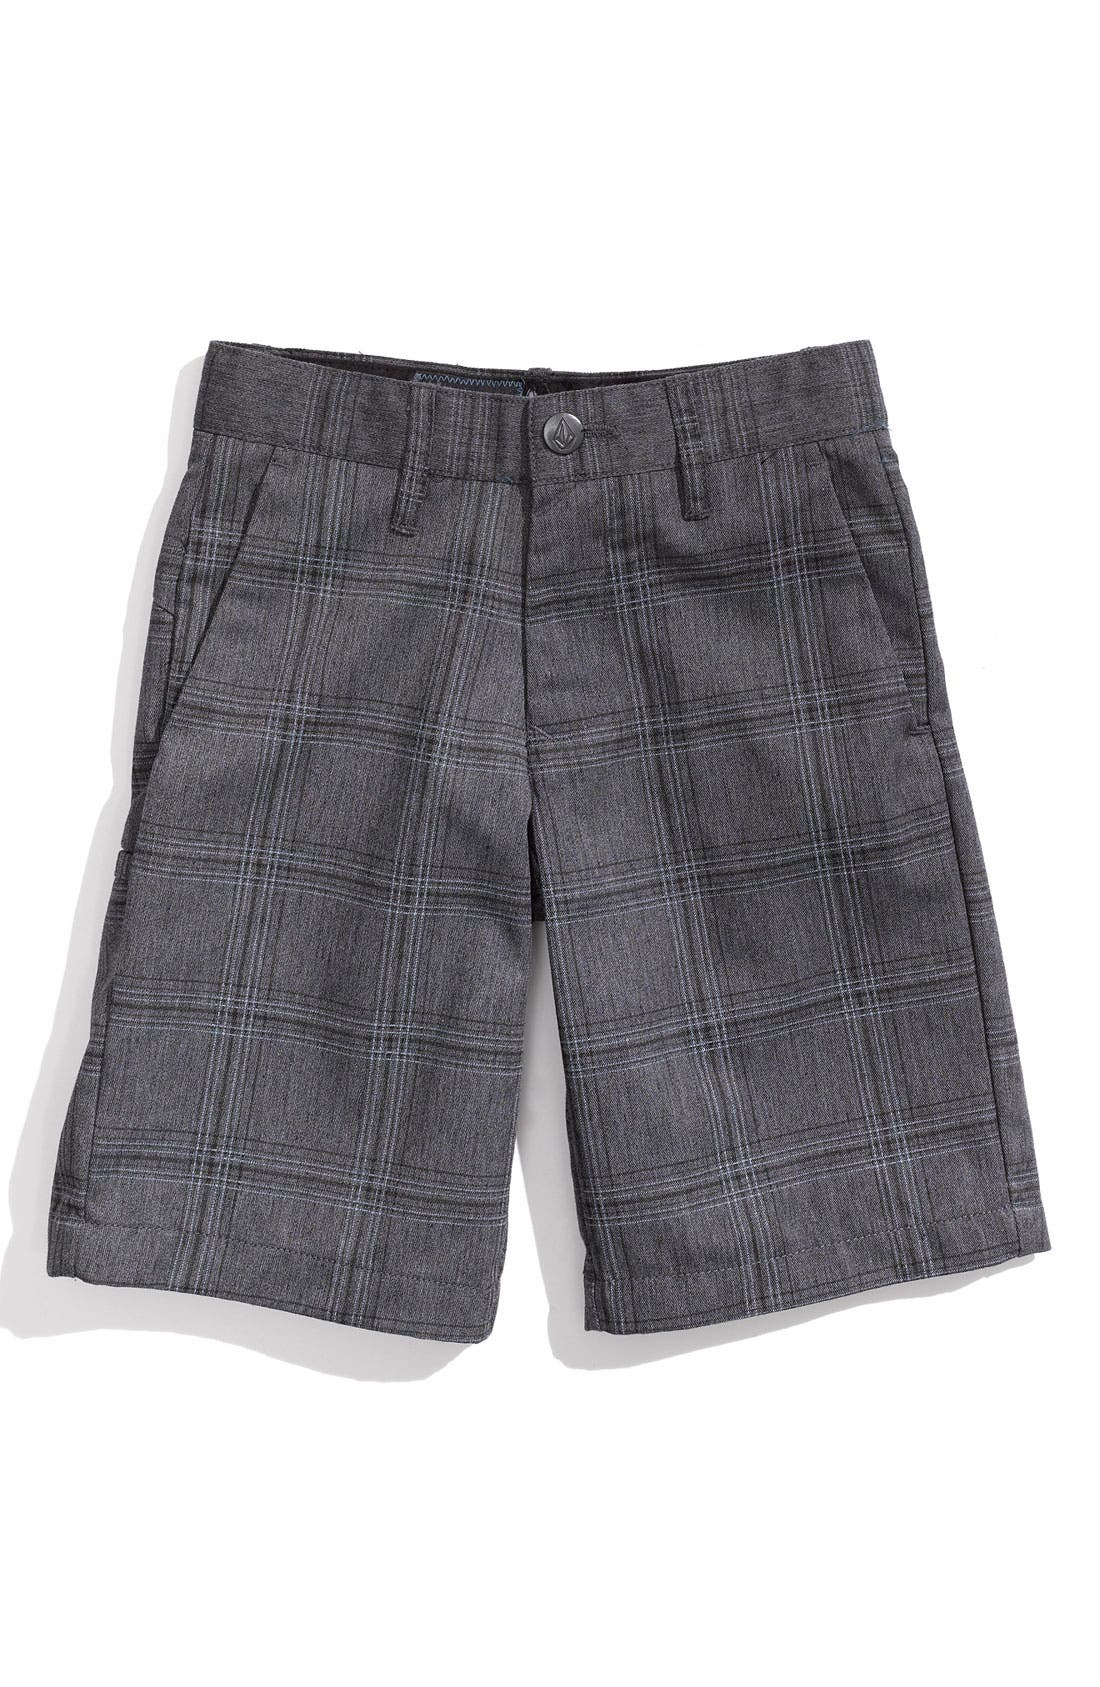 Alternate Image 1 Selected - Volcom Modern Plaid Shorts (Little Boys)